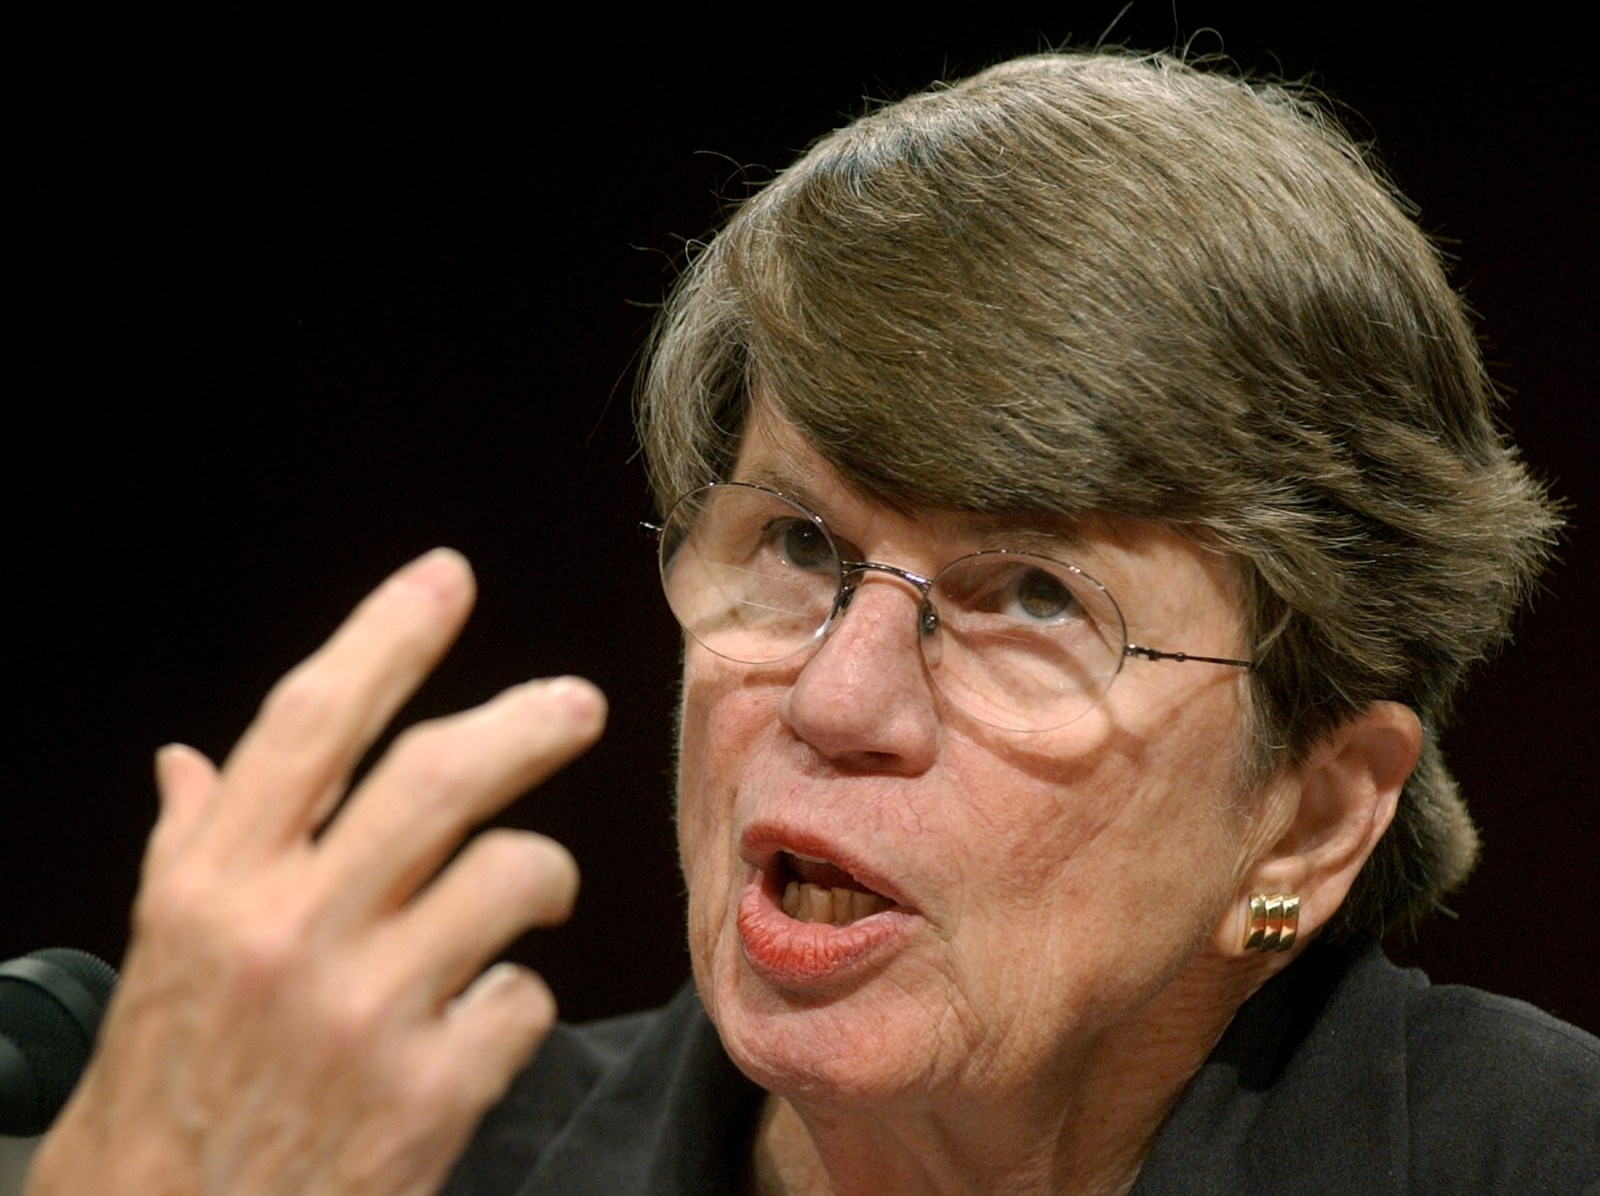 SECURITY COMMISSION Janet Reno